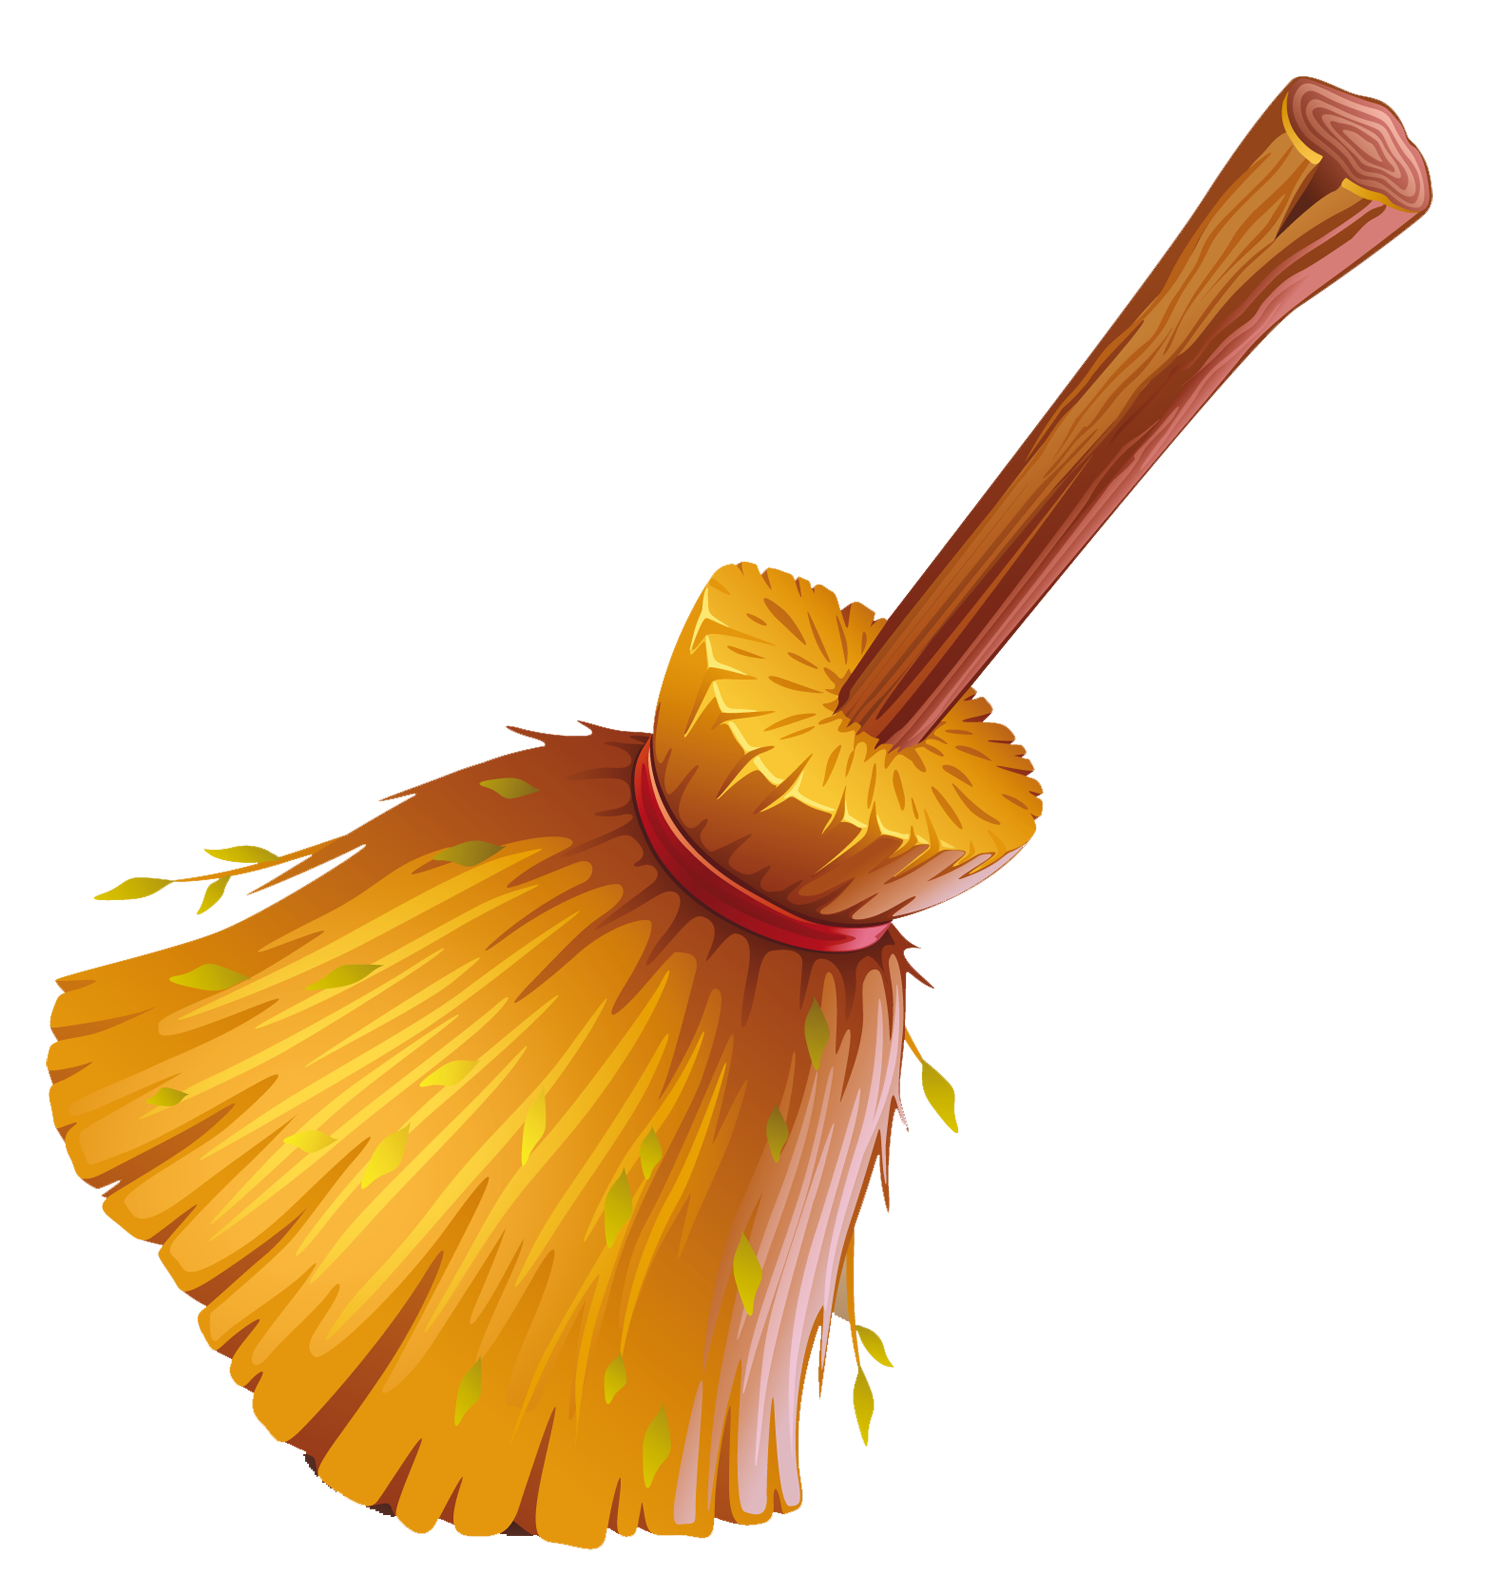 jpg . Broom clipart golden